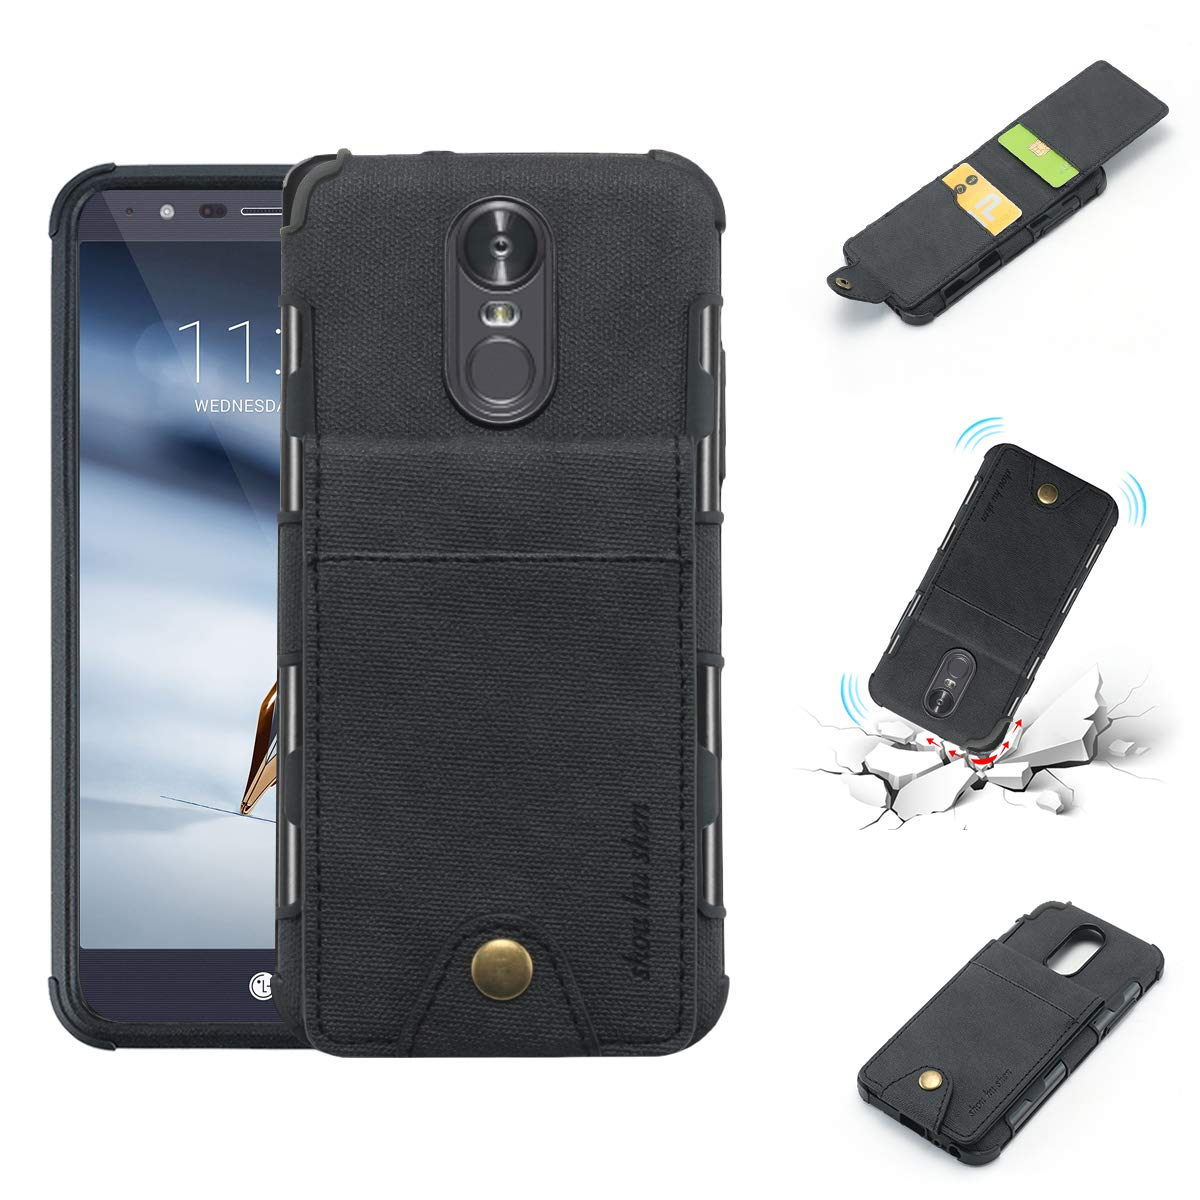 LG Stylo 3 Case, LG Stylo 3 Plus Wallet Phone Case, 5 ID Credit Card Slot, Button Flip-Out Leather Drop Protection Case - Black